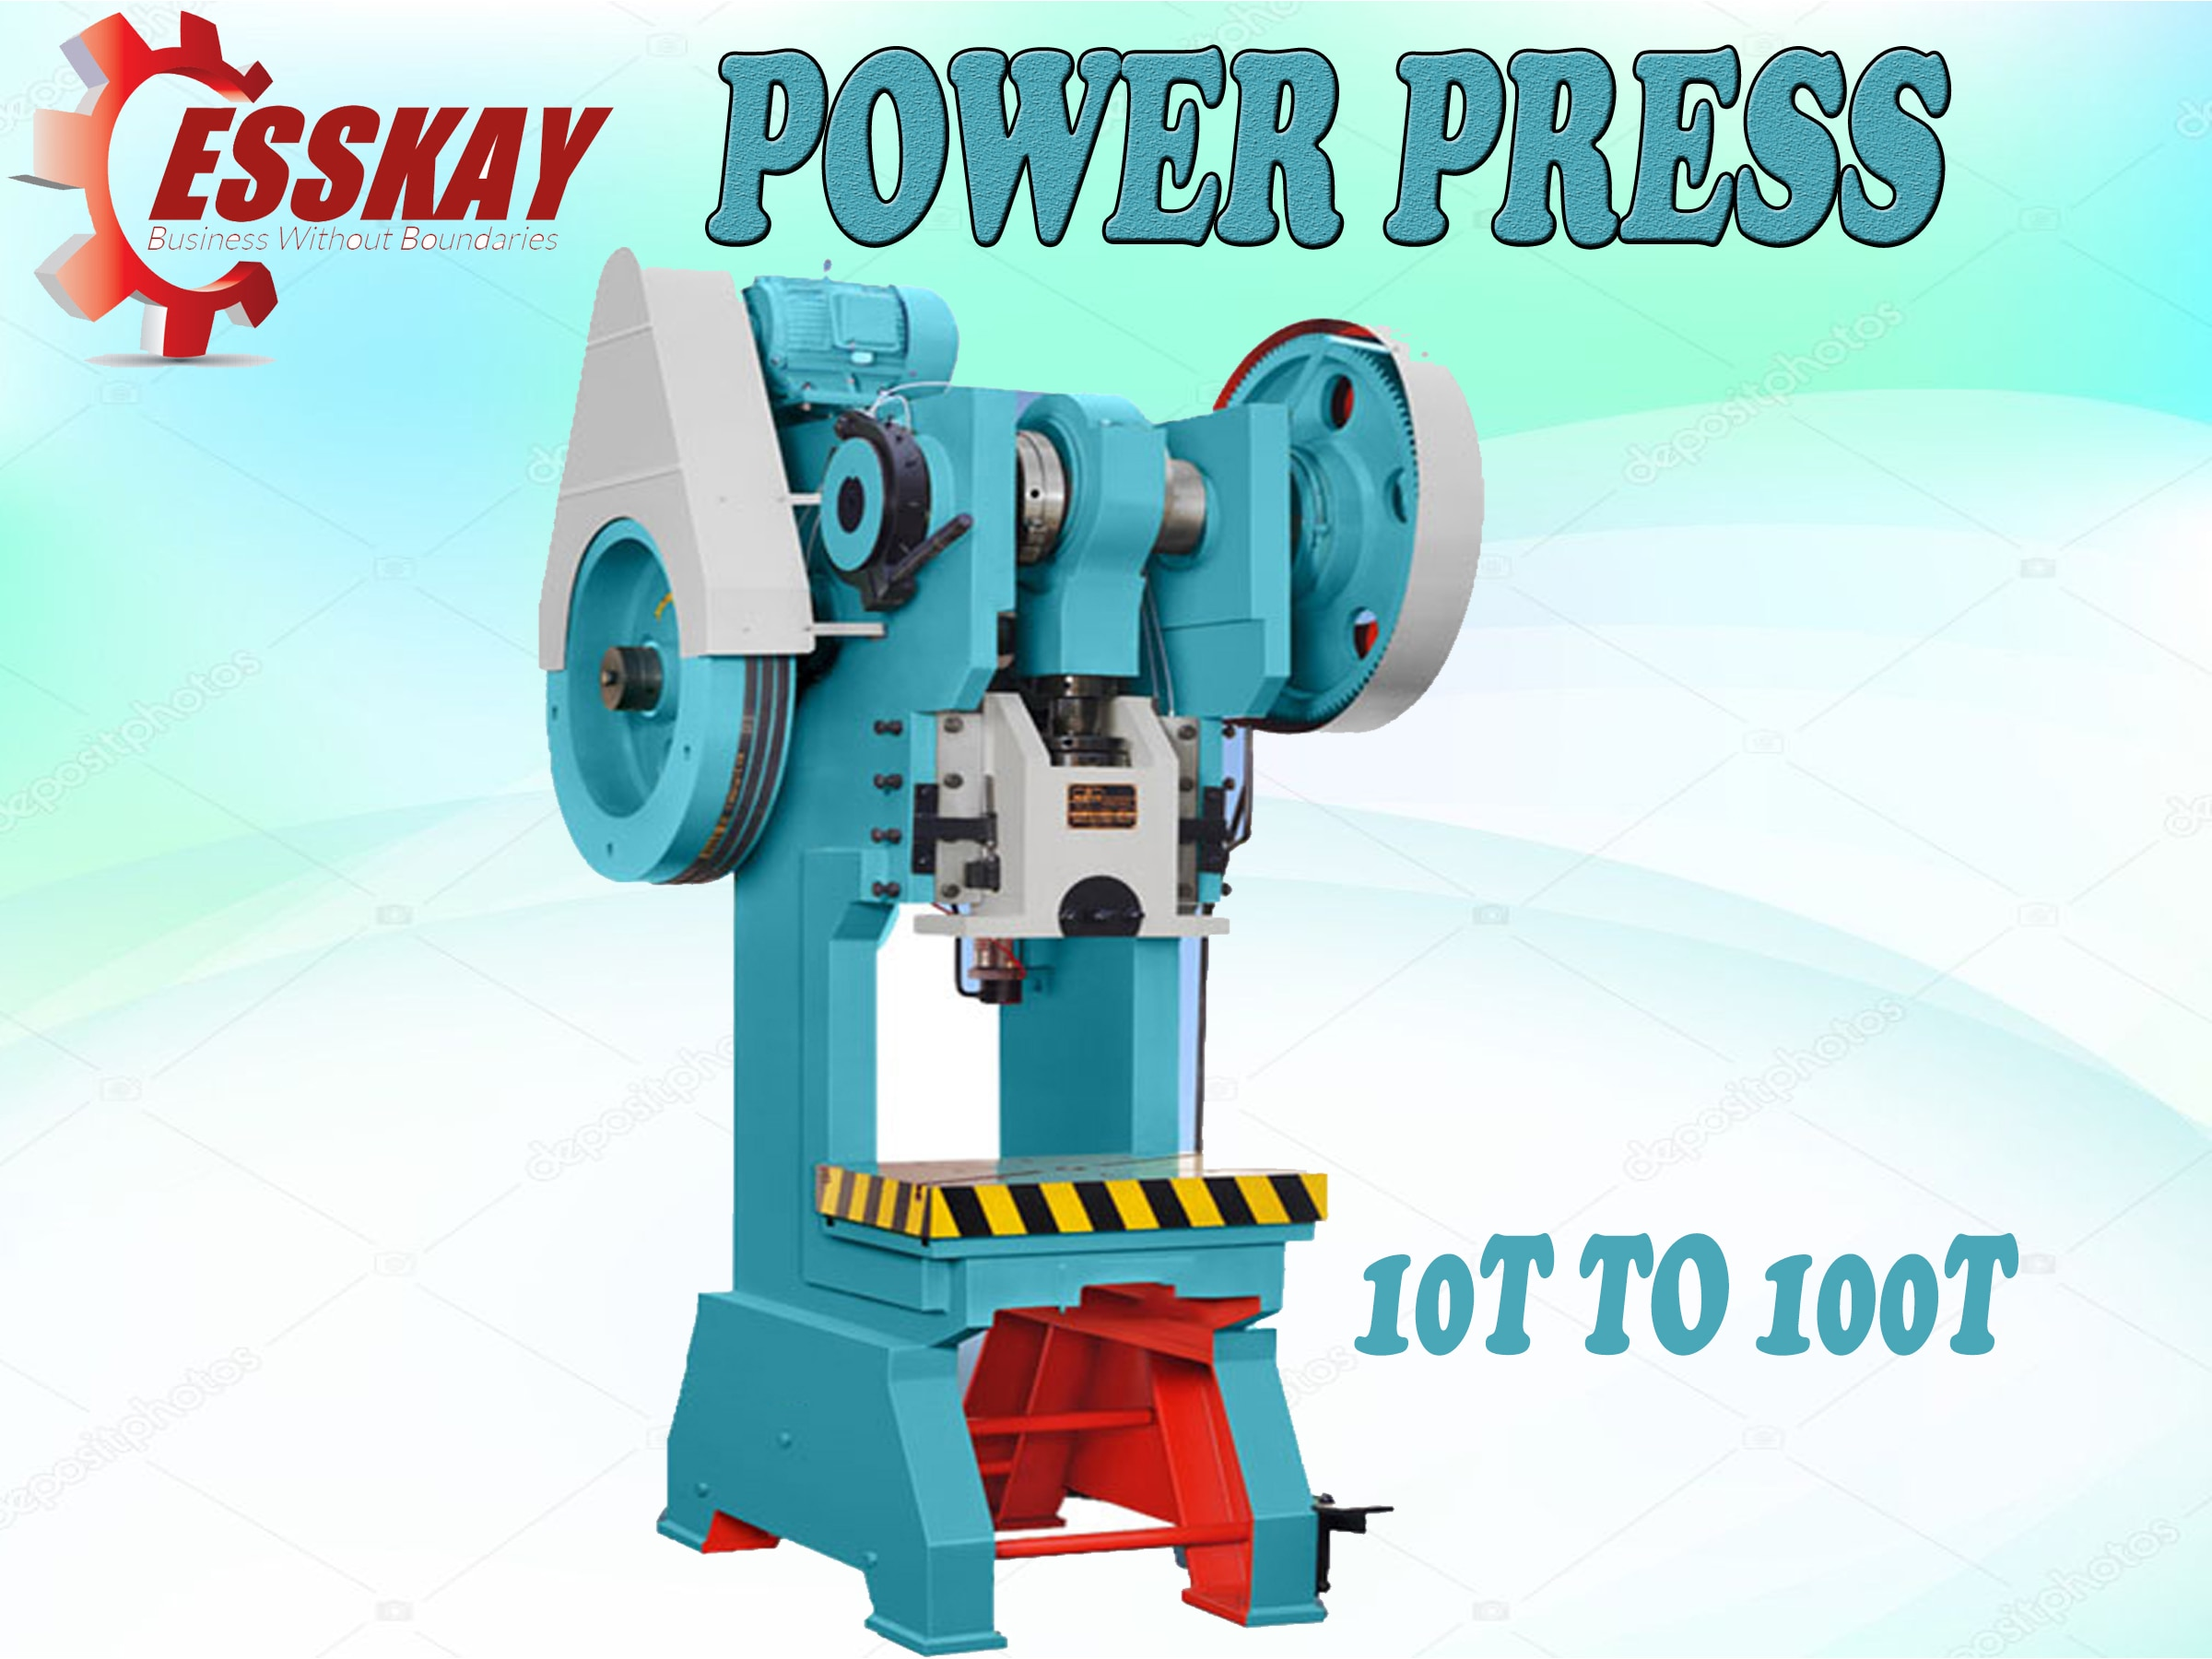 Product Details:  Capacity10 Ton Bed Size310 x 435 inch Bed To Ram230 mm Bolster Thickness58 mm Crank Shaft Dia75 mm Stroke Length52 mm Gear Dia455 mm Fly Wheel Dia535 mm  ESSKAY brand mechanical Power Presses are coming in both C frame and Pillar type versions from 3 tons to 250 tons capacity in most economical type of construction with several std/optional features such as manual/auto lubrication. systems; knockouts electronics hand safety; single/double or un-geared versions as also pneumatic feeders/ straightness and de-coilers for automation Purpose.  Request Callback